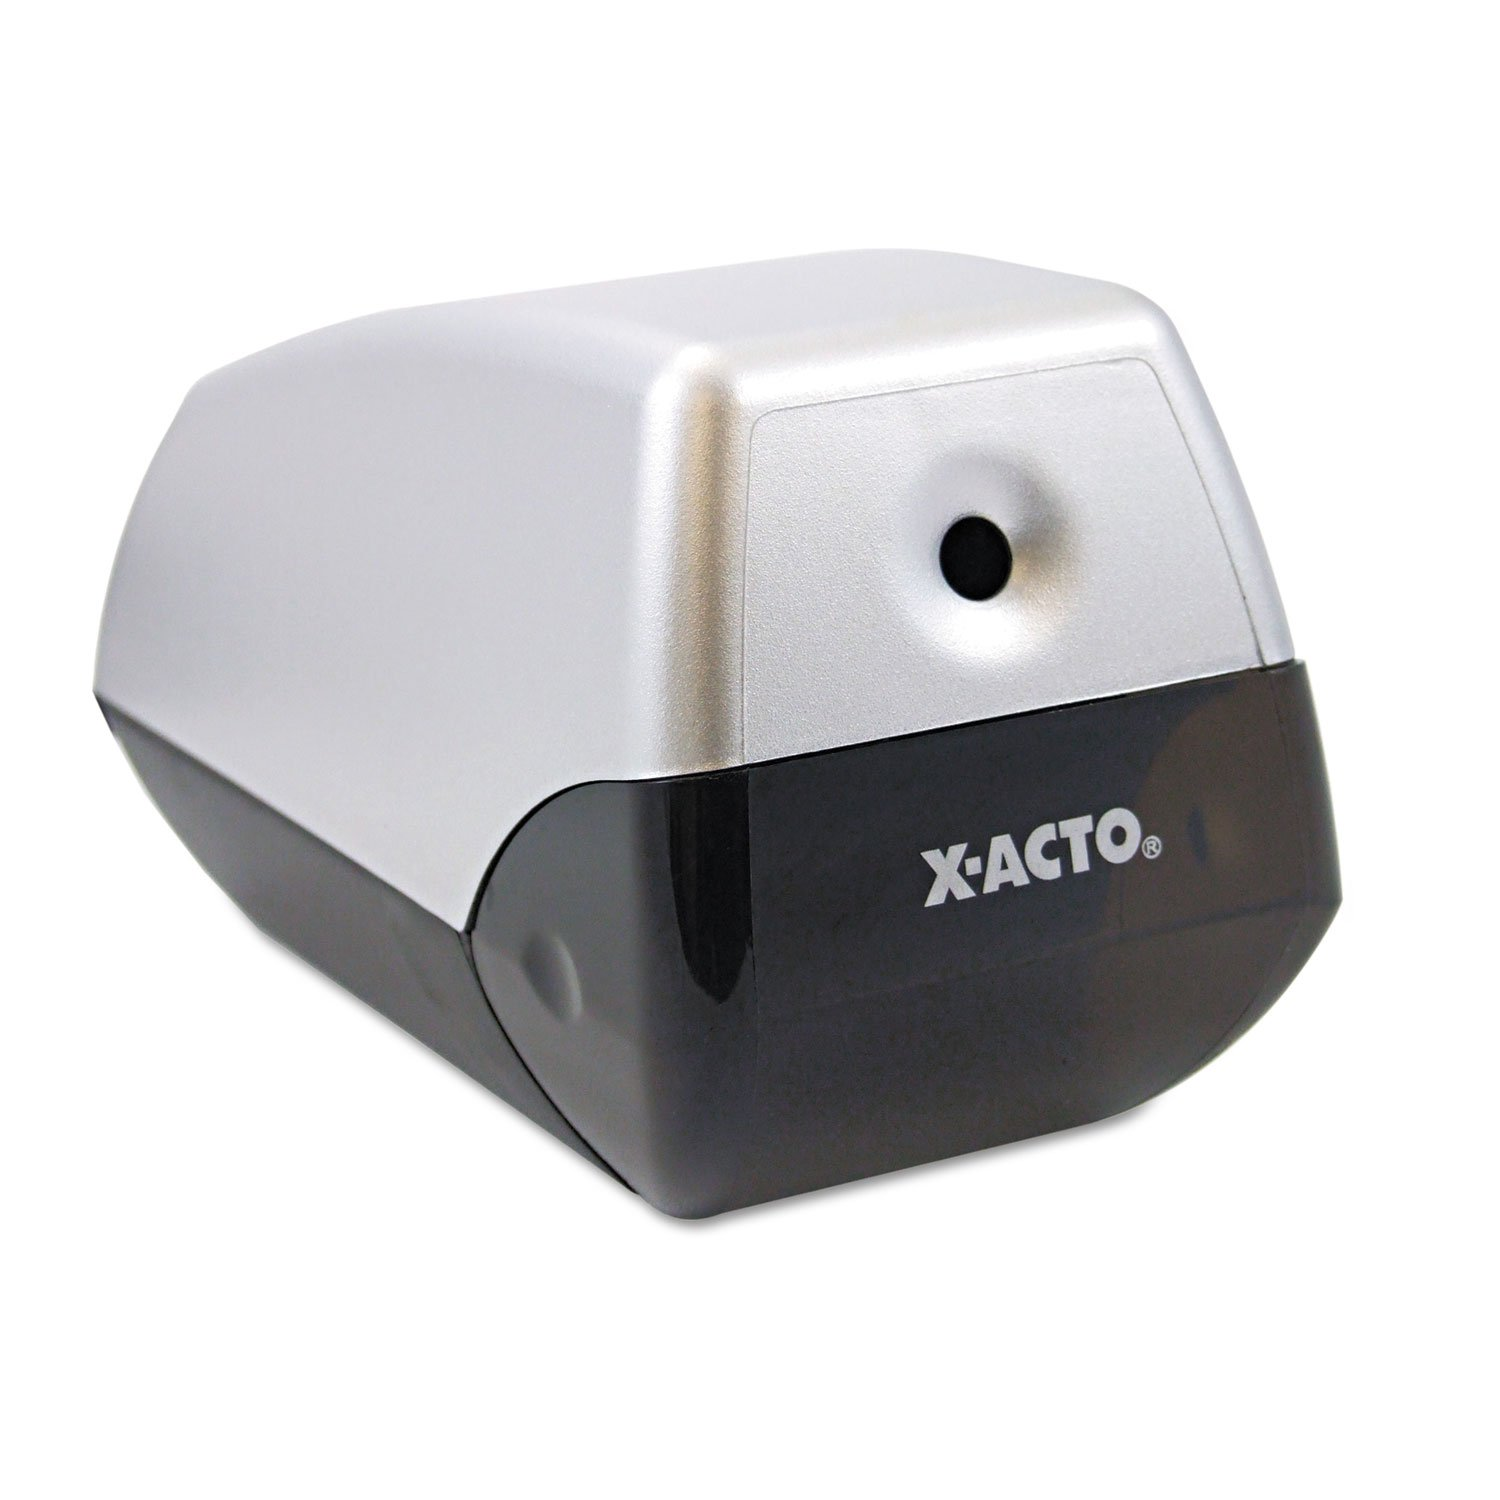 X-ACTO 1900 Helix Office Electric Pencil Sharpener, Silver/Black by X-Acto (Image #4)